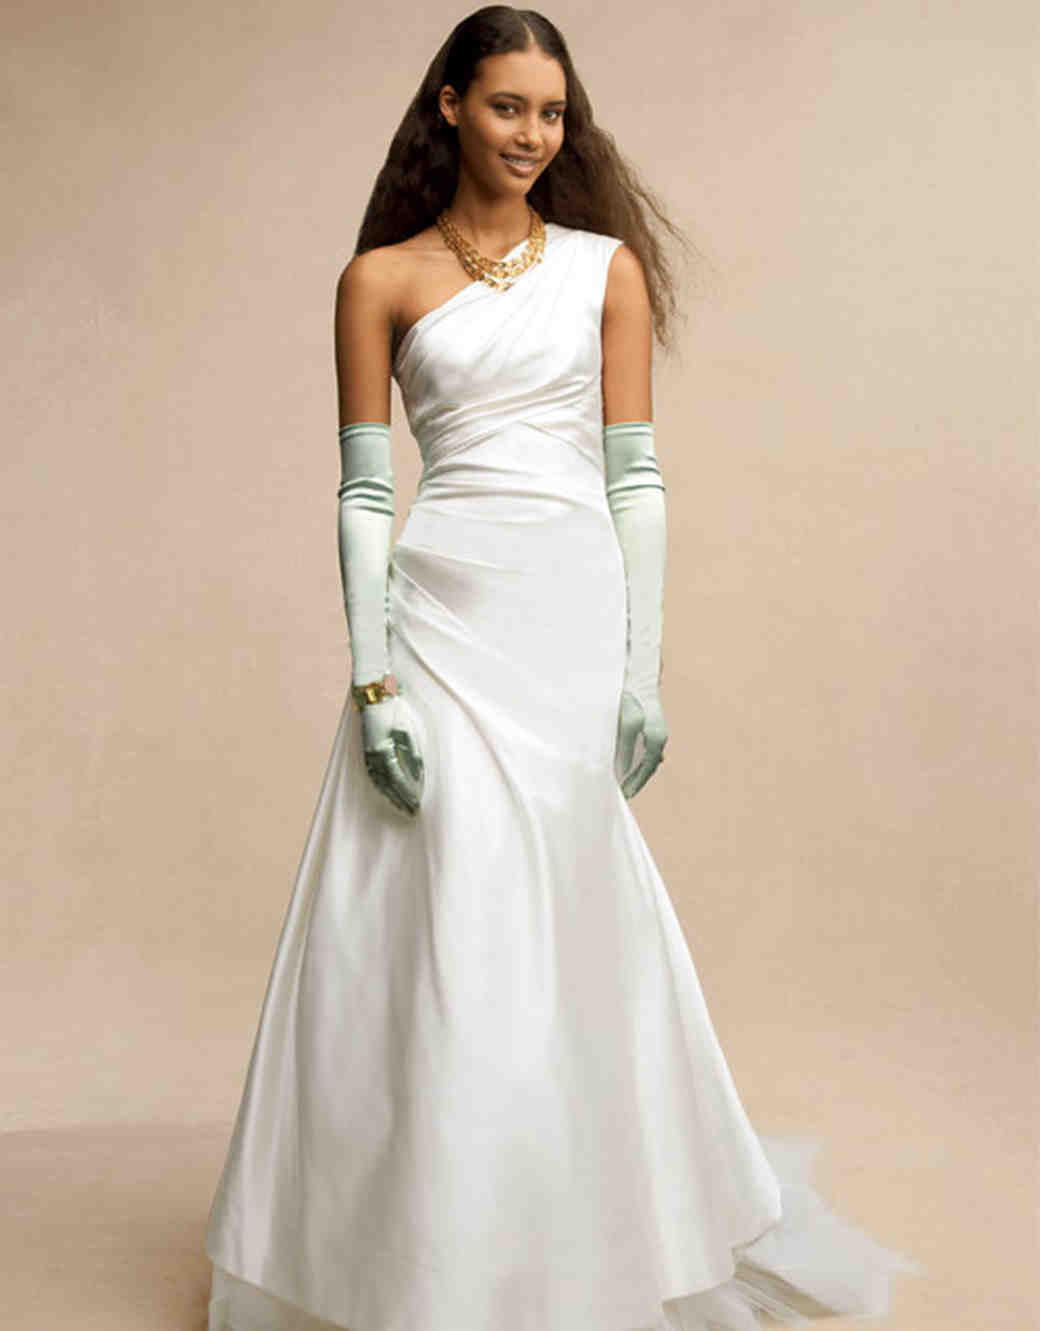 Personalized Wedding Dresses Martha Stewart Weddings